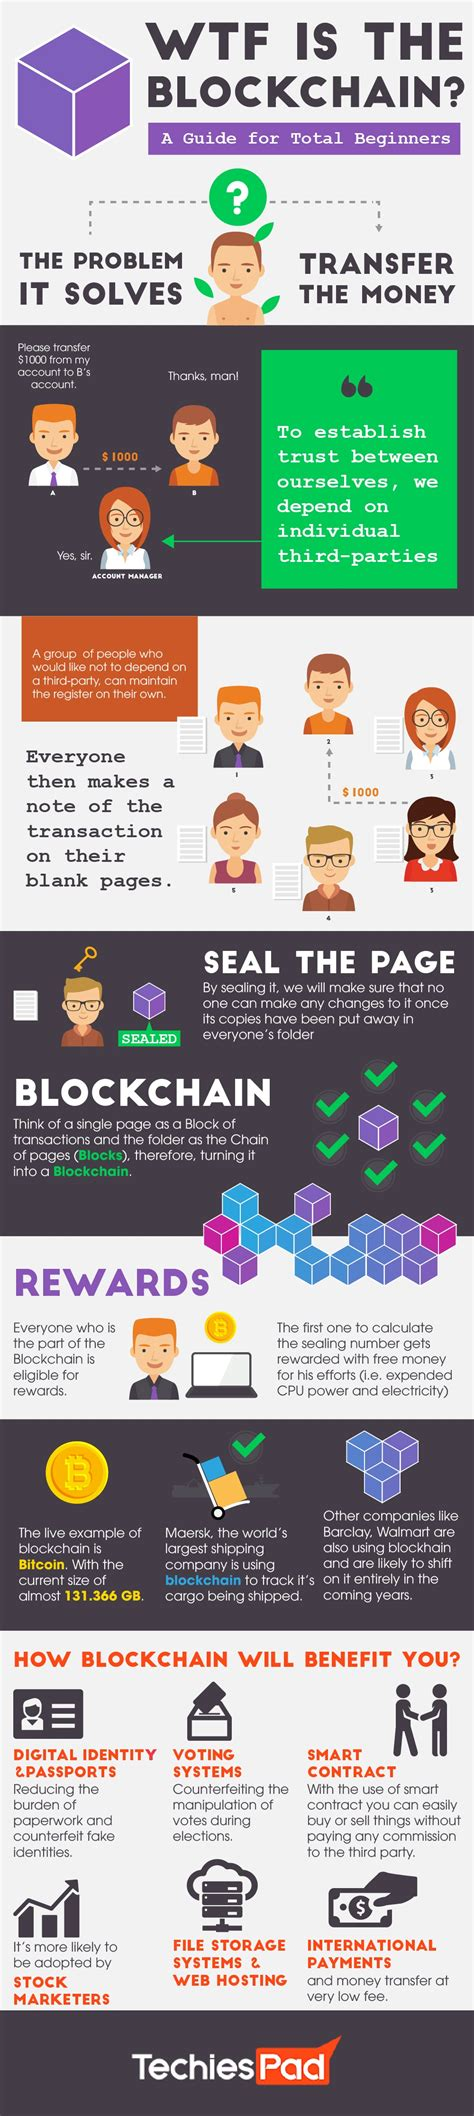 blockchain for beginners understand the blockchain basics and the foundation of bitcoin and cryptocurrencies books beginners guide to the blockchain infographic how to